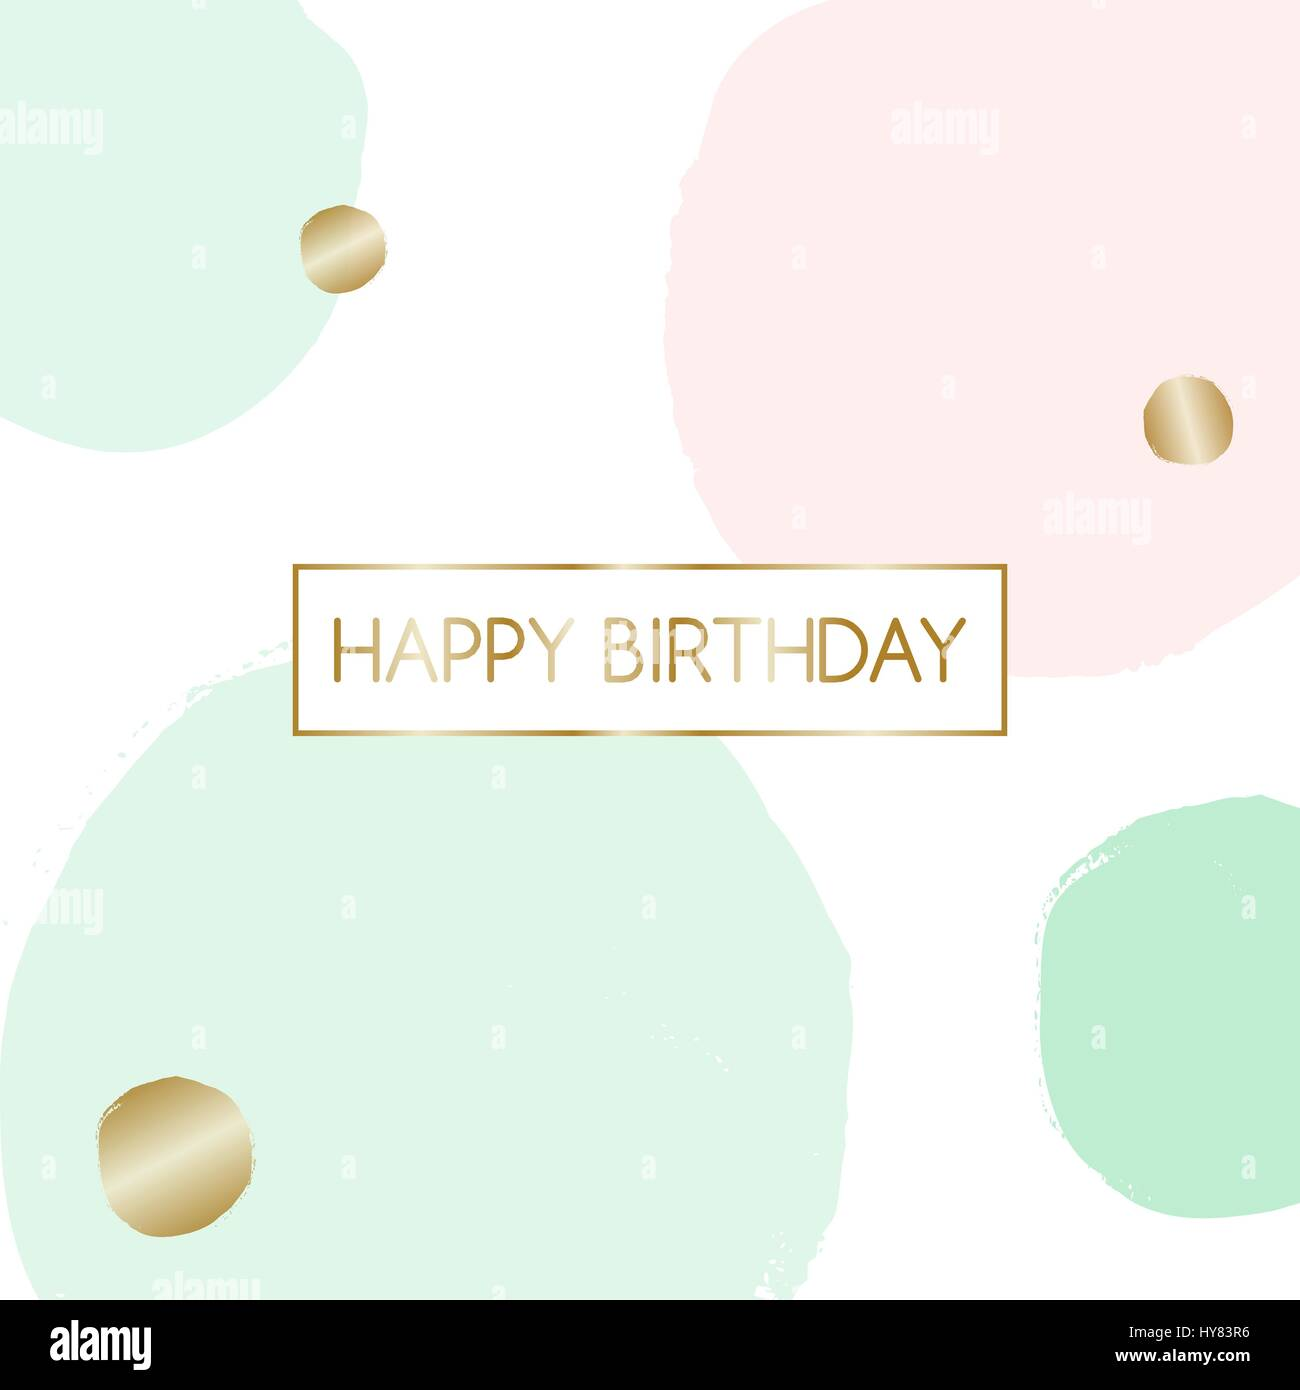 Birthday Greeting Card Design With Text Happy In Gold And Pink Mint Green Bubbles The Background